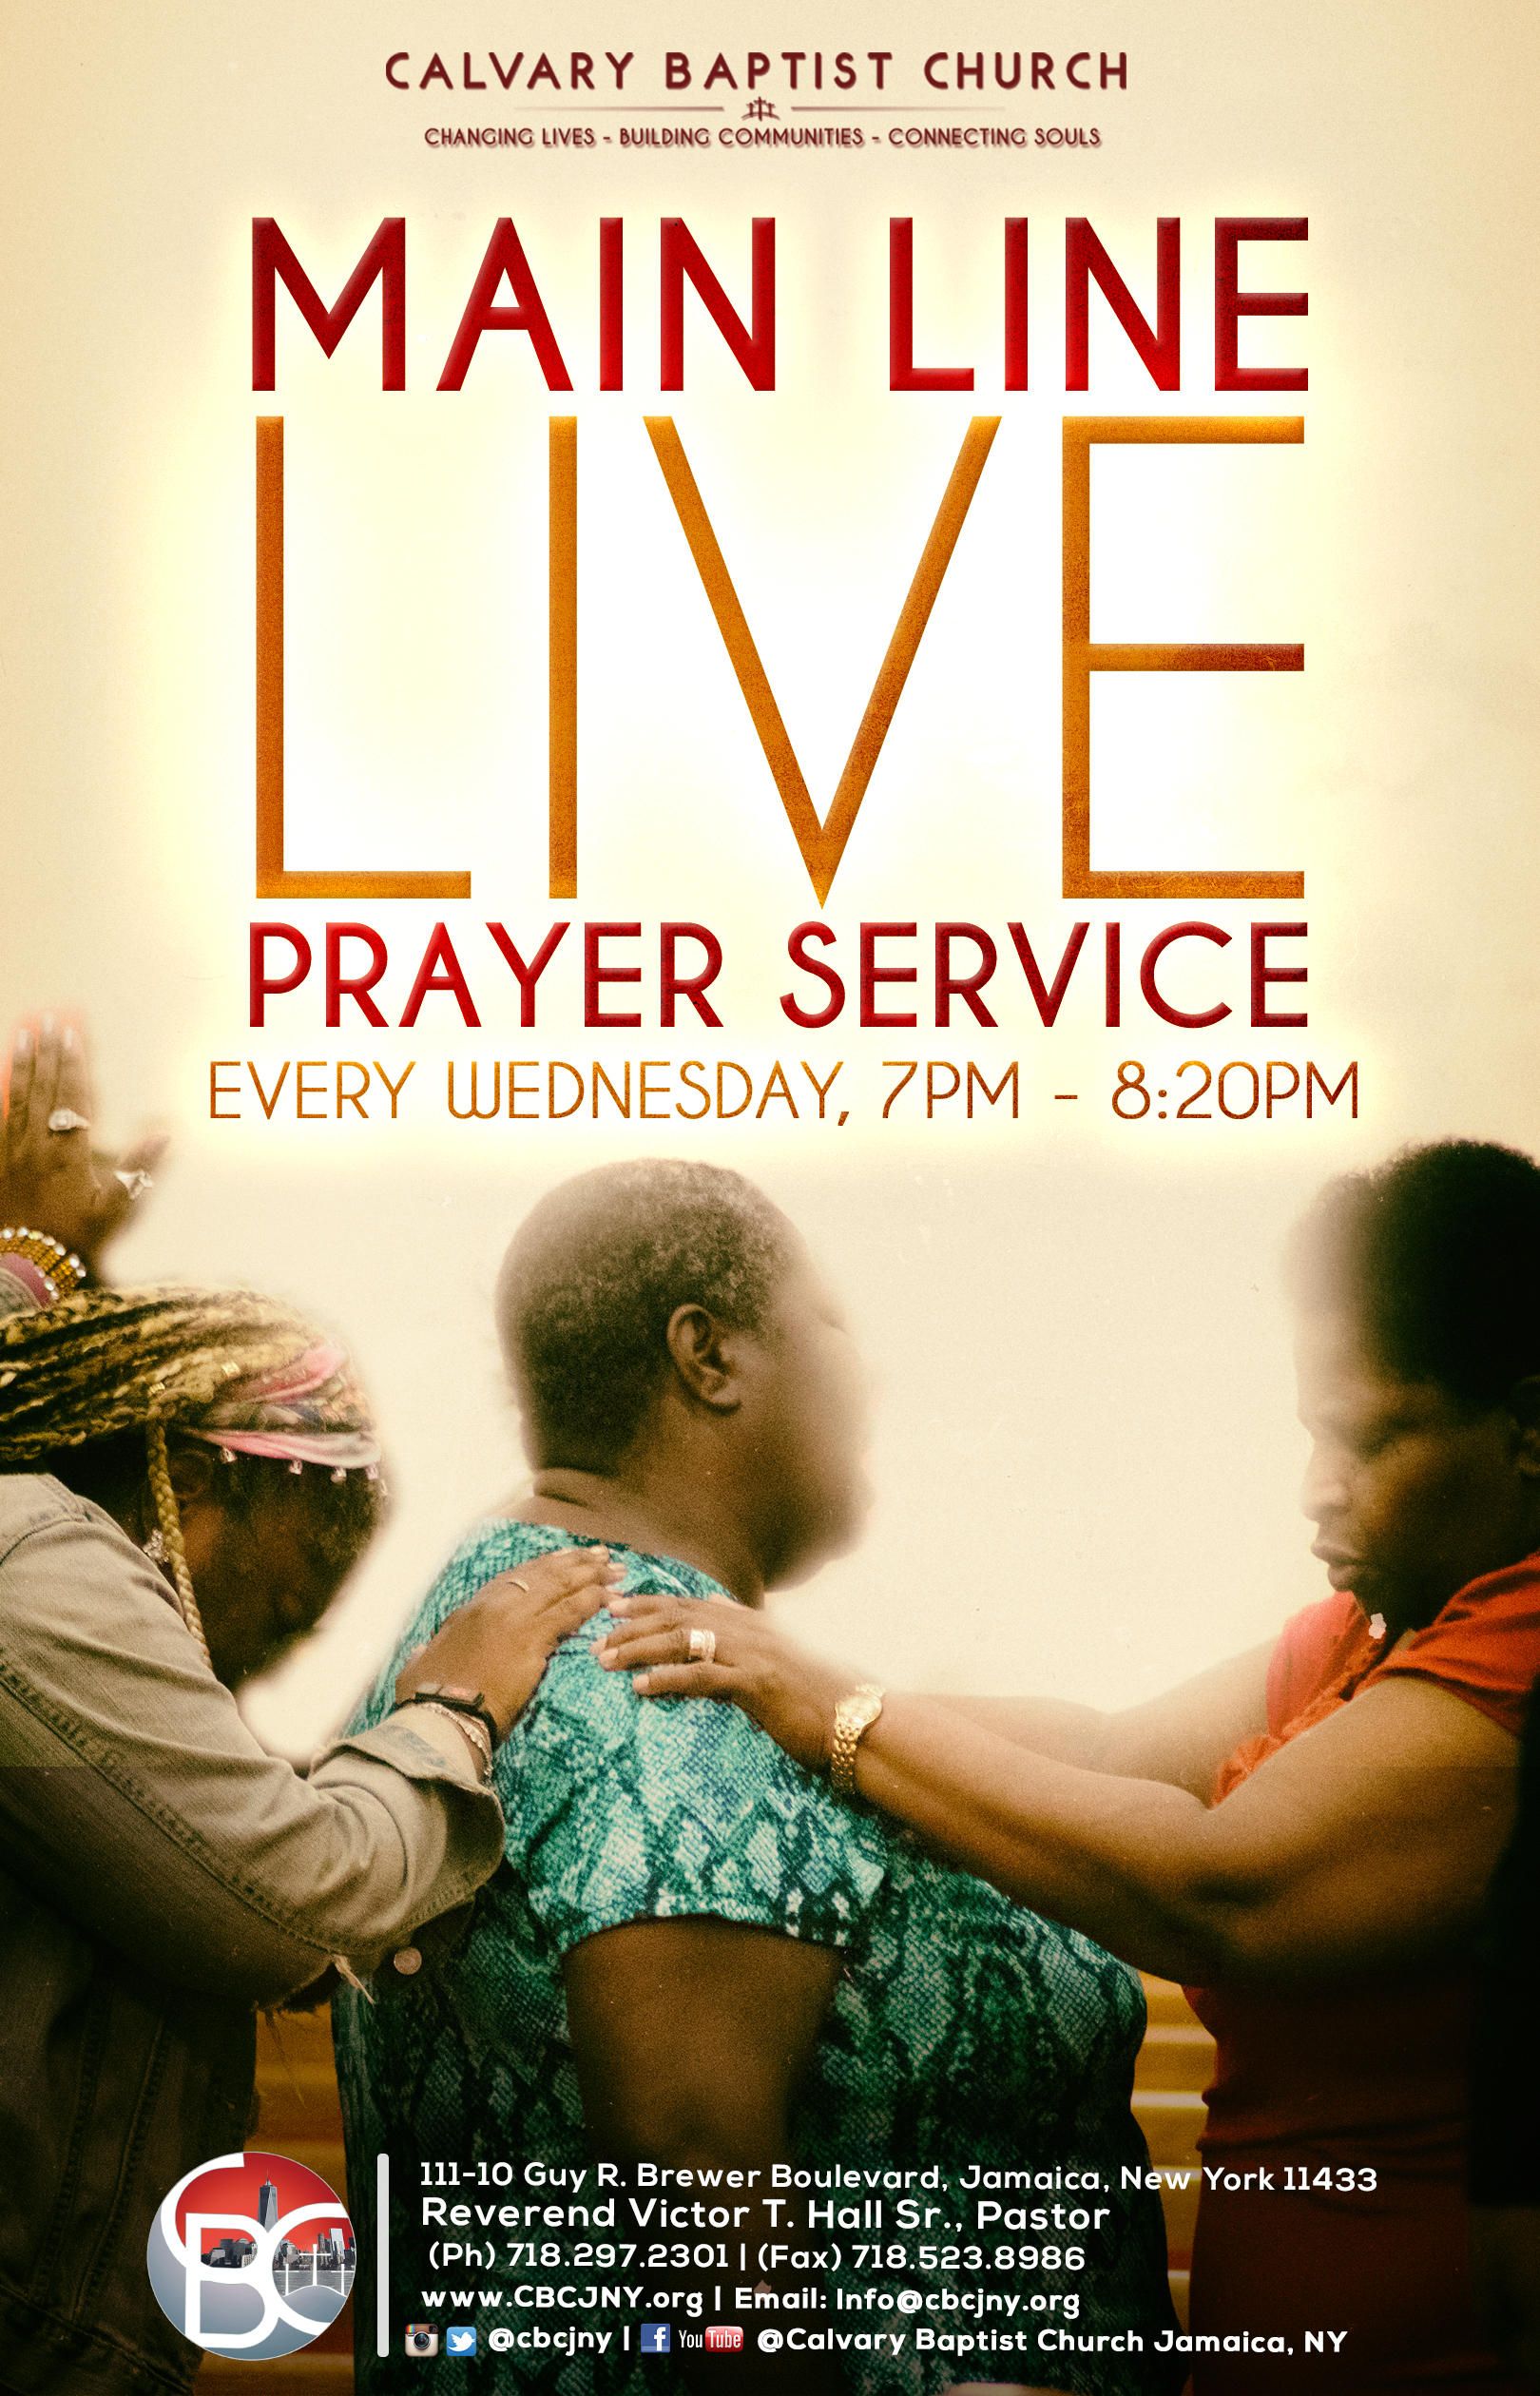 Main Line Live prayer service flyer